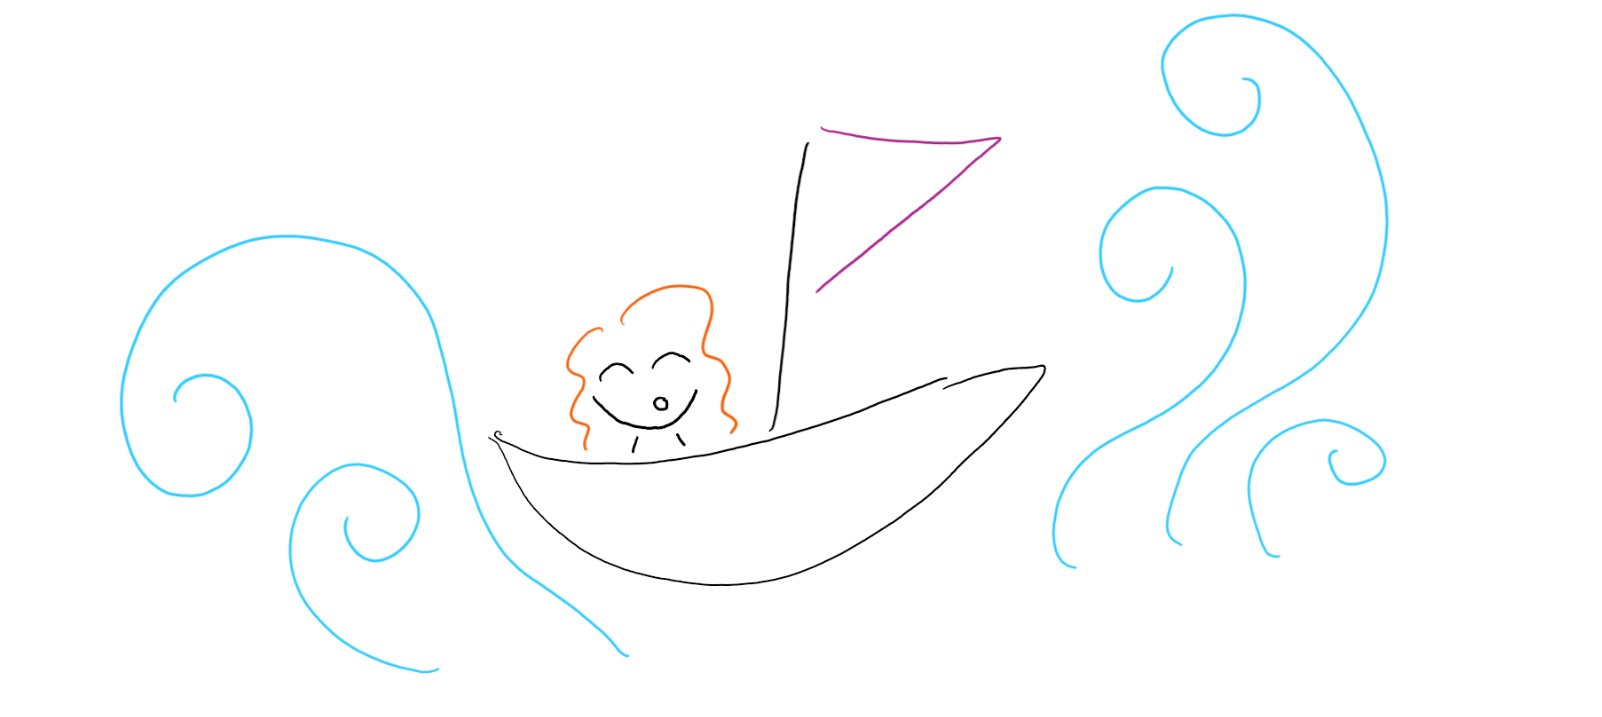 Doodle of navigating unknown waters.